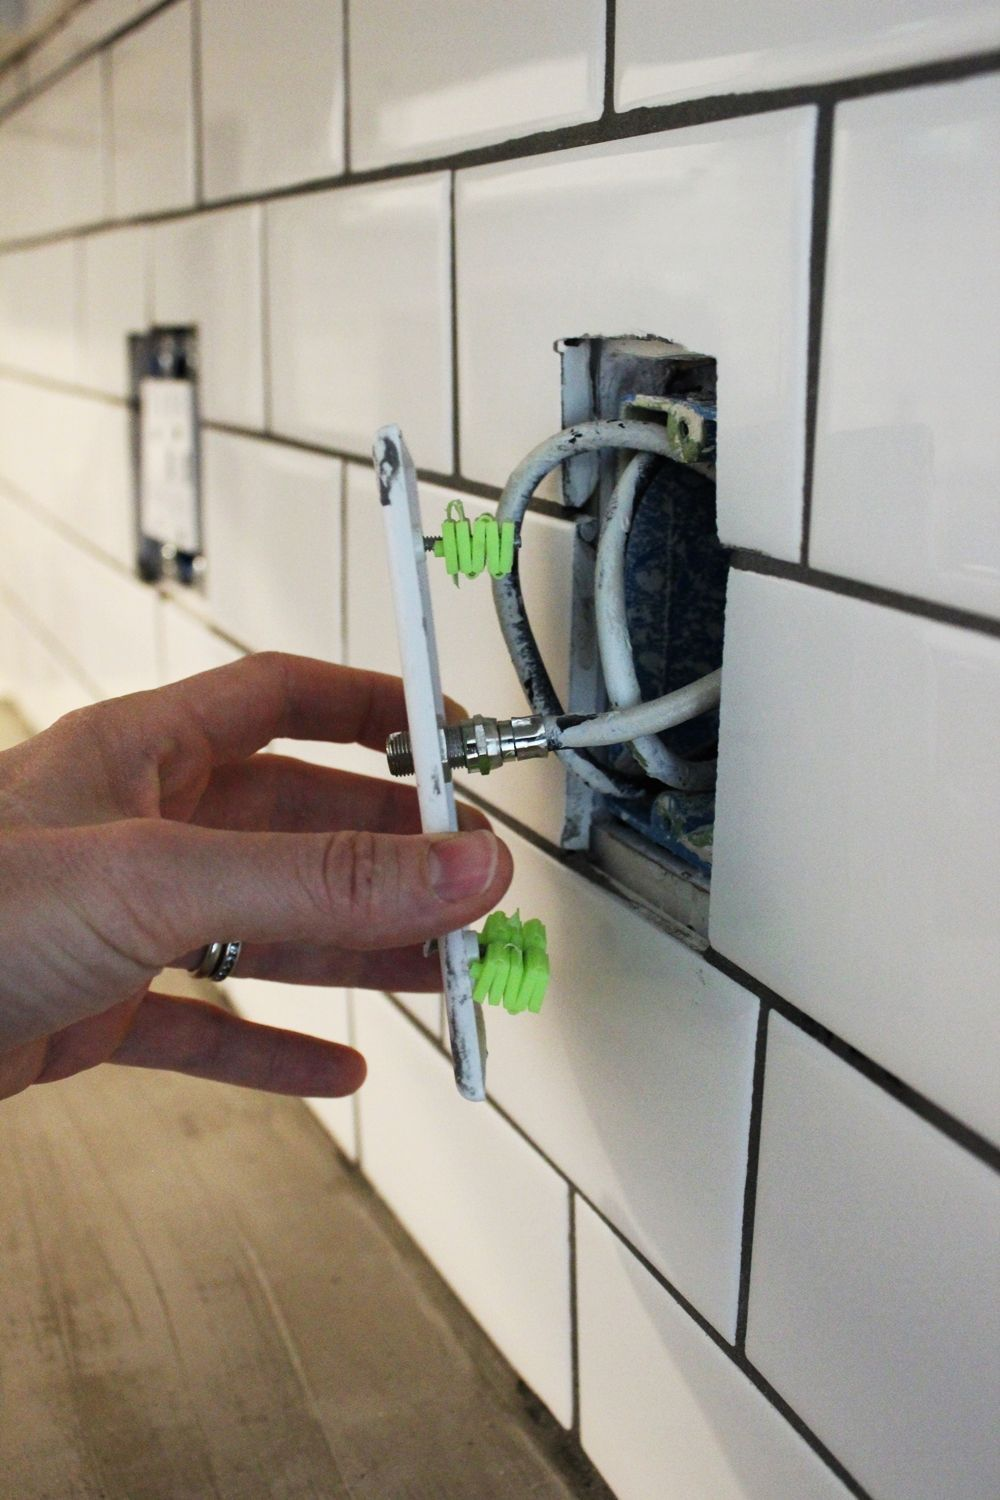 How to install a subway tile kitchen backsplash electricity to the outlets has been switched off dailygadgetfo Choice Image